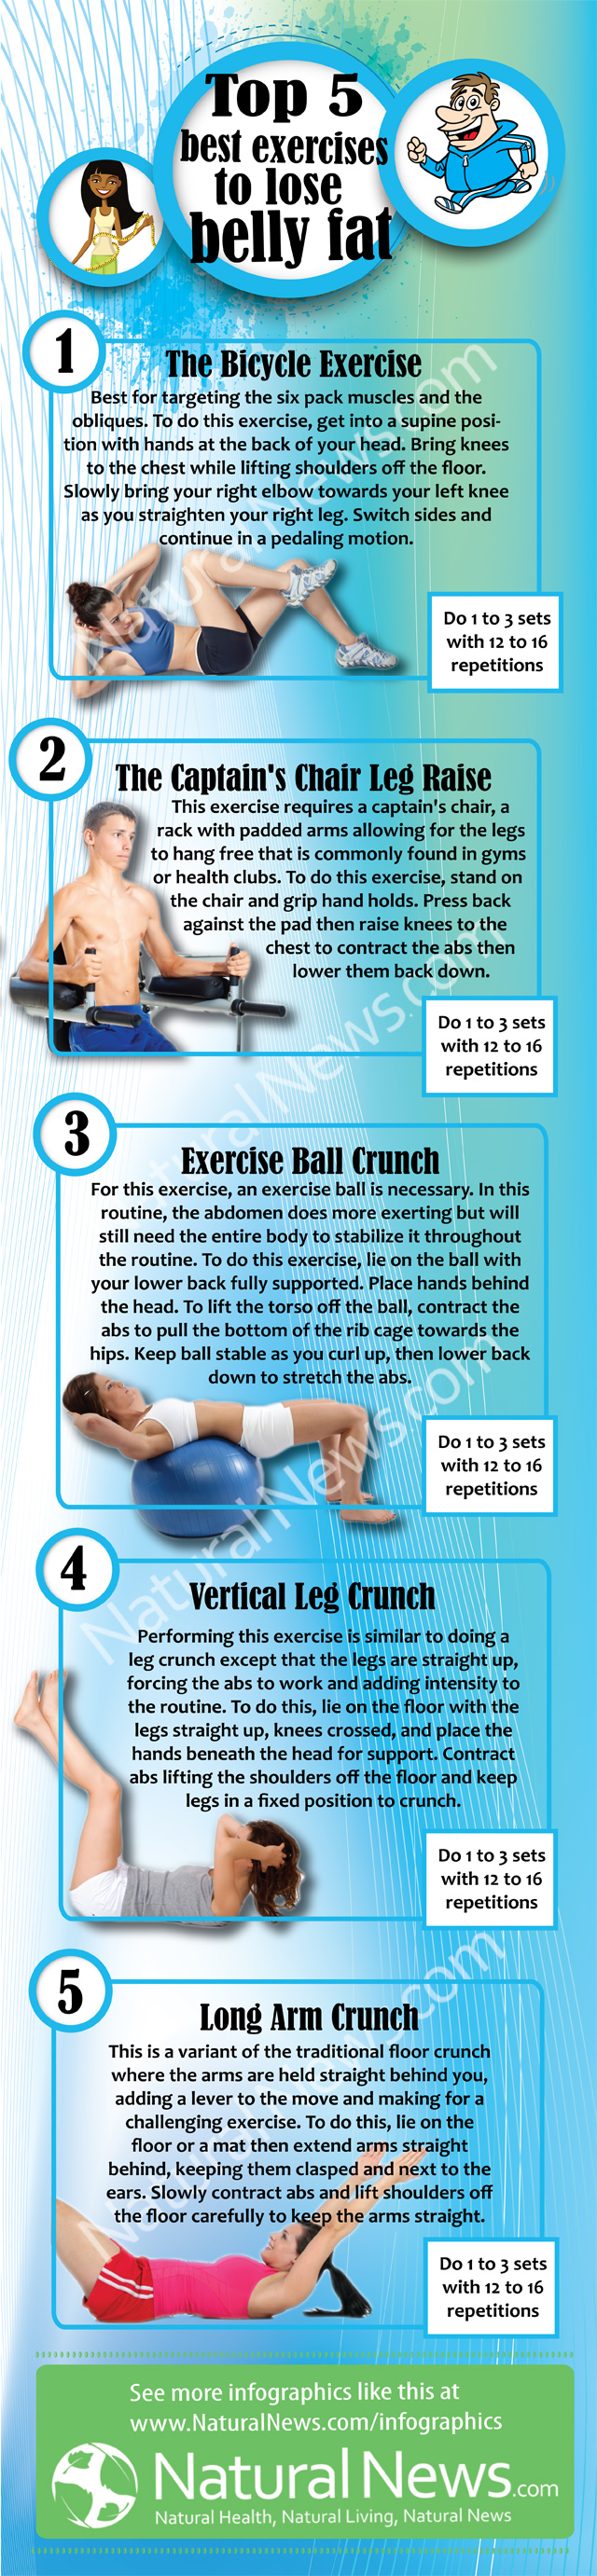 Best Exercises to Lose Fat